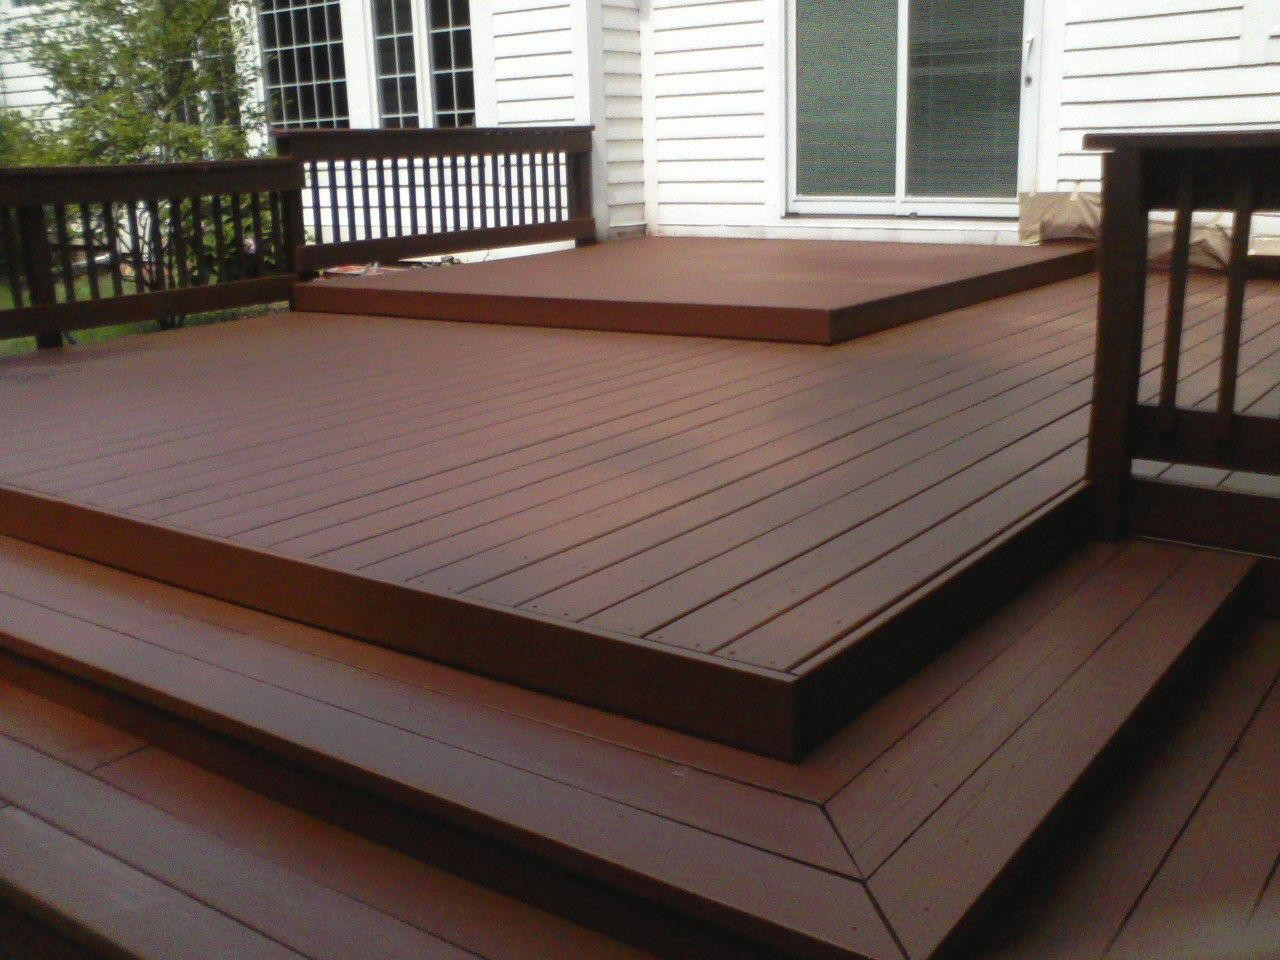 Painted Wood Deck Images